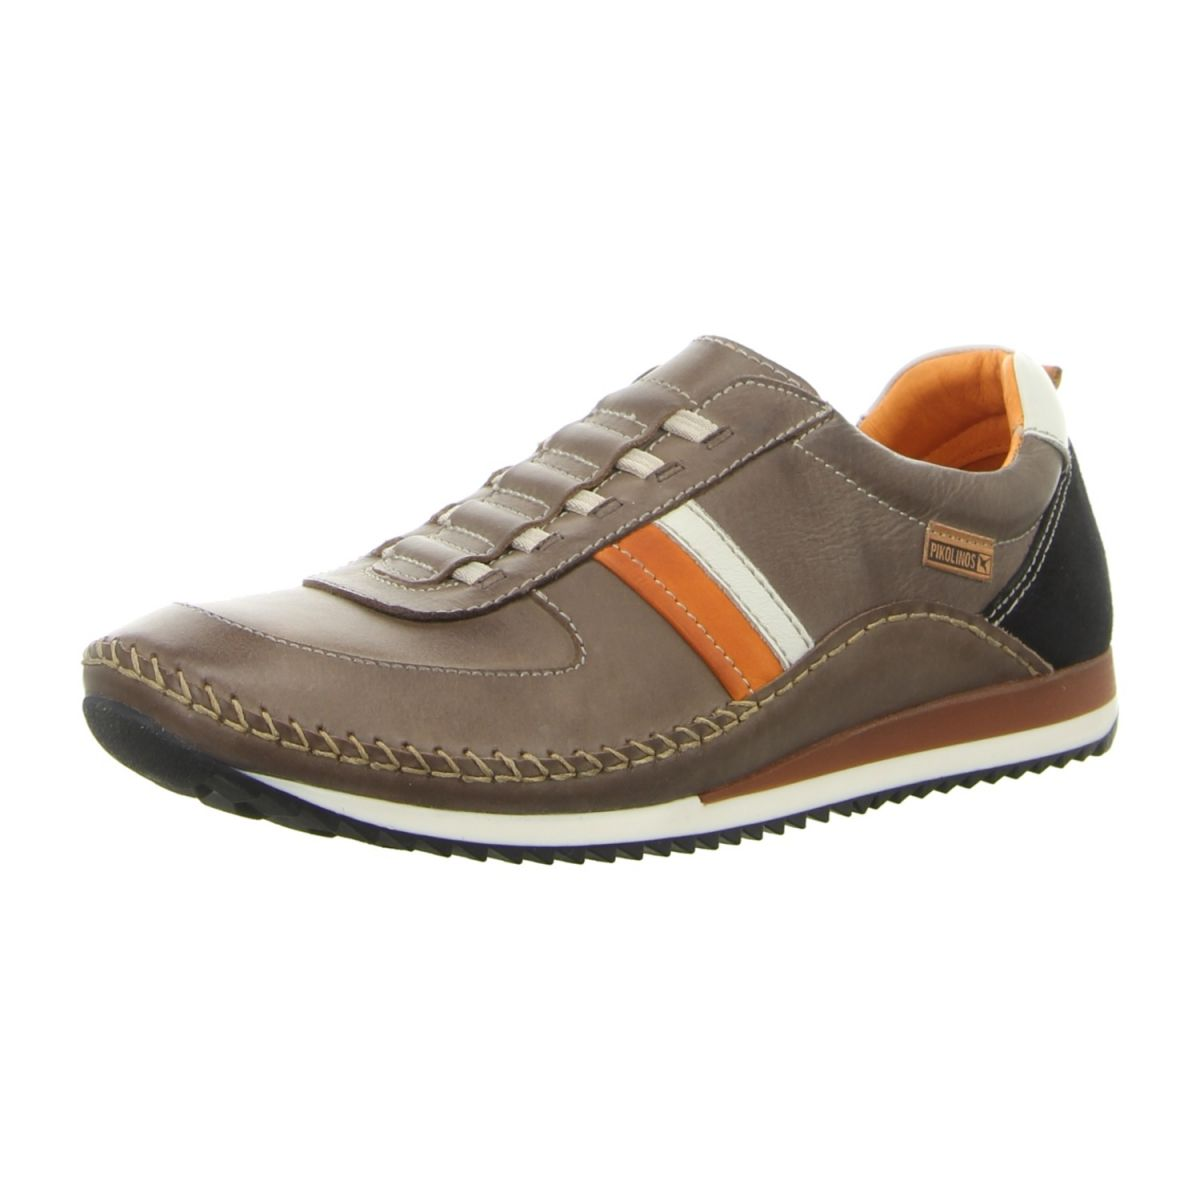 Pikolinos M2A-6061DT Liverpool Chaussures Mocassins homme, schuhgröße_1:44 EU;Farbe:marron